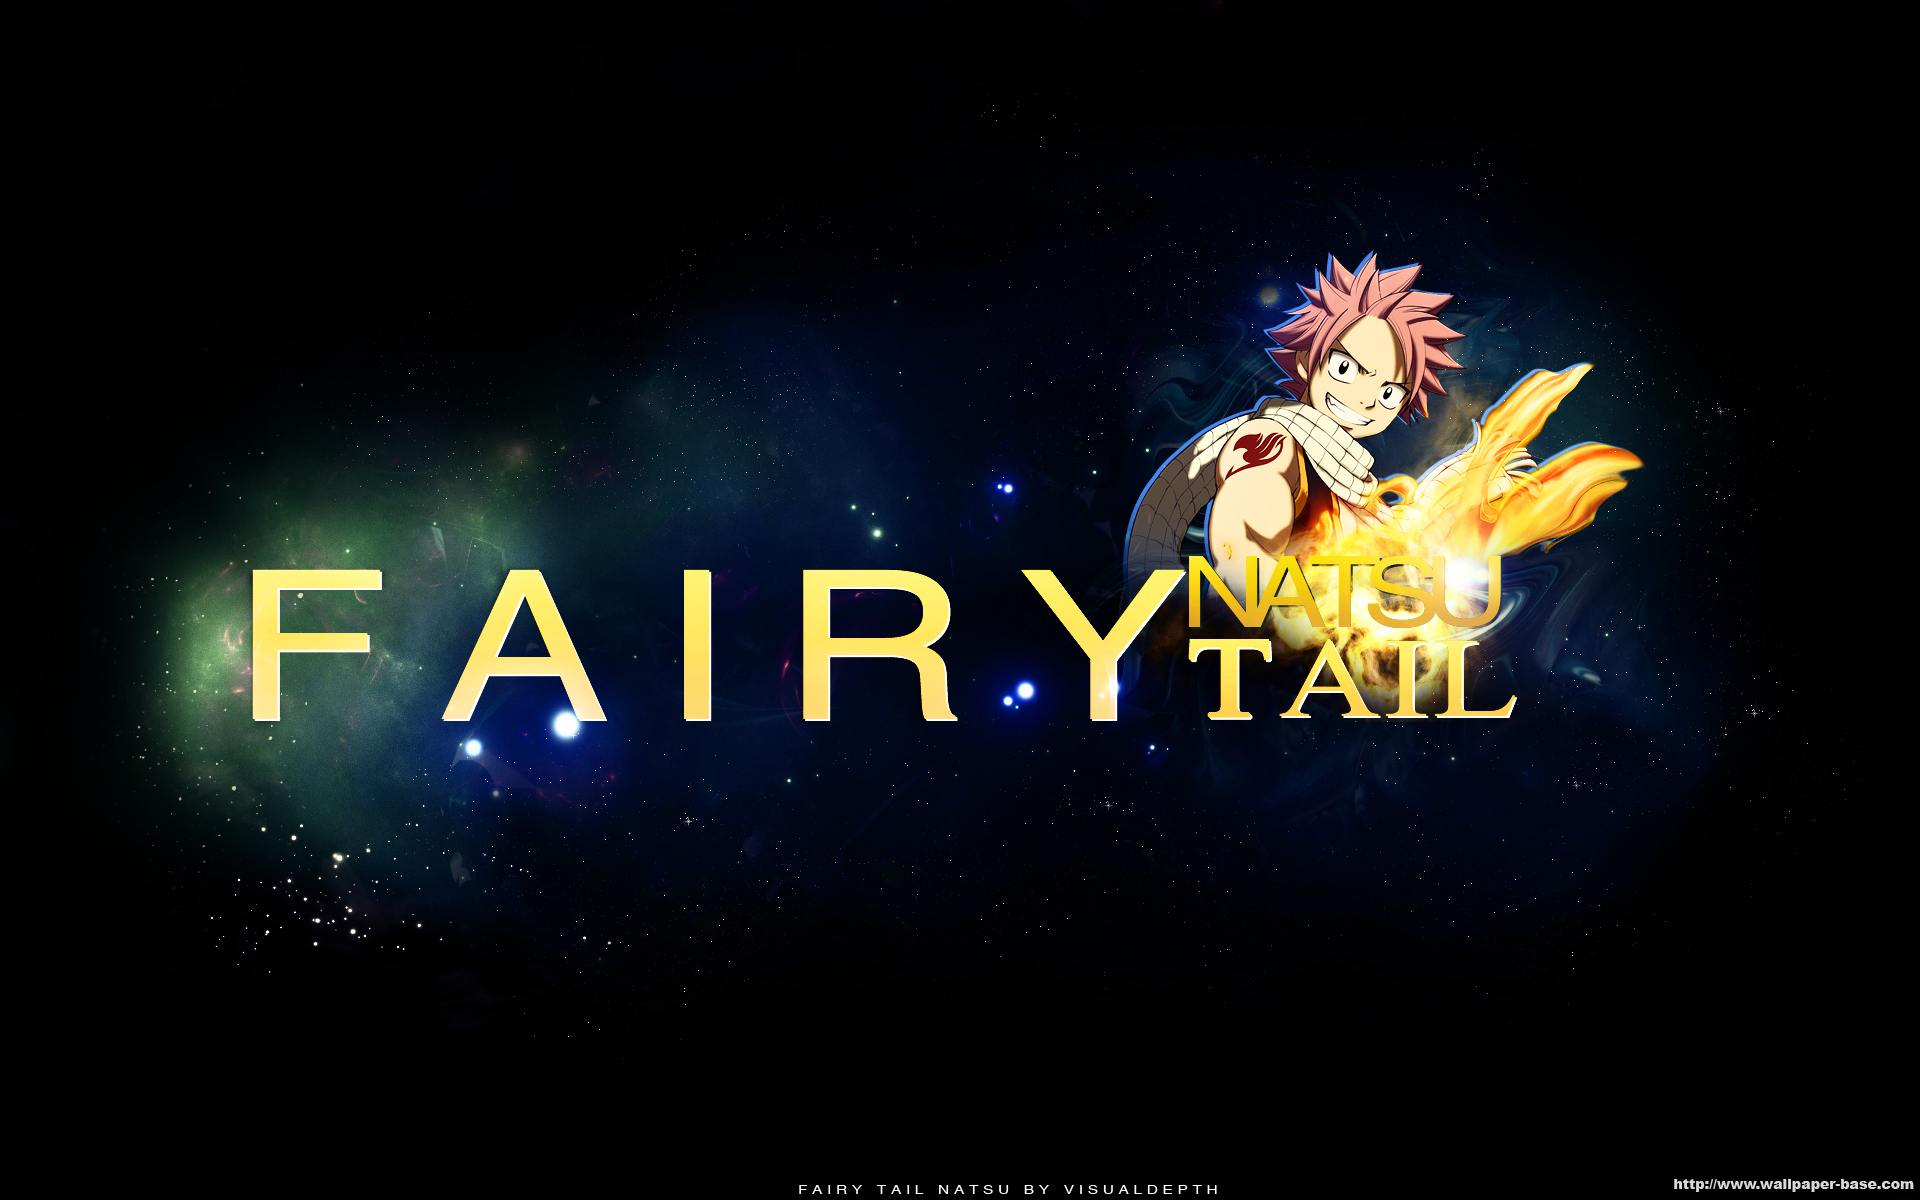 Fairy Tail usuitakumi77